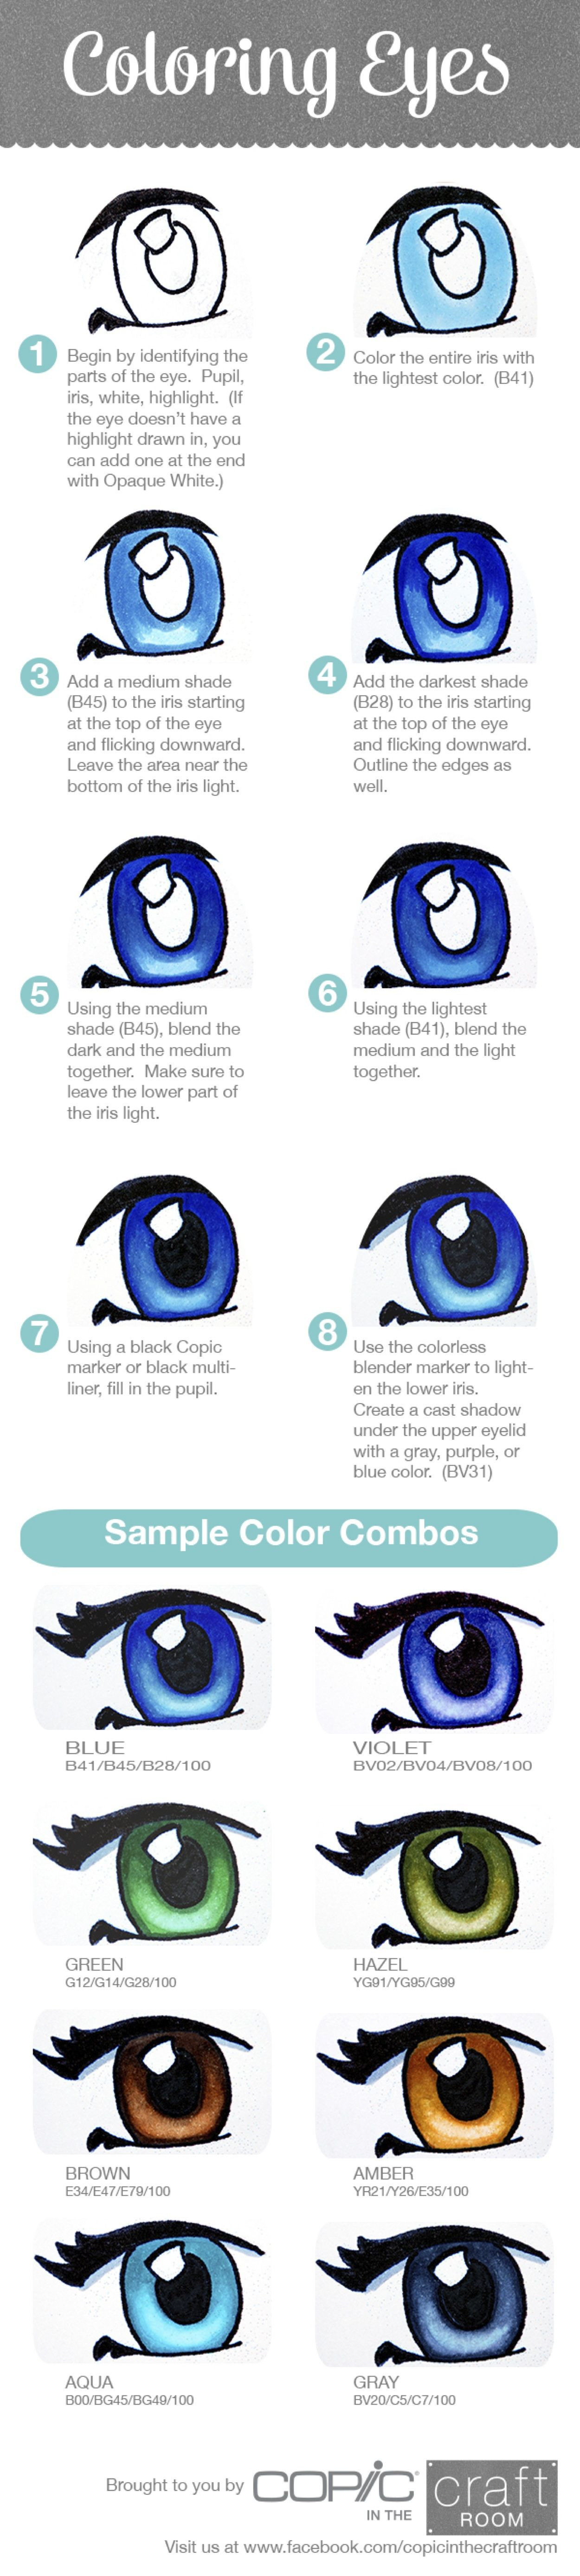 Pin On Copic Tips And Tutorials